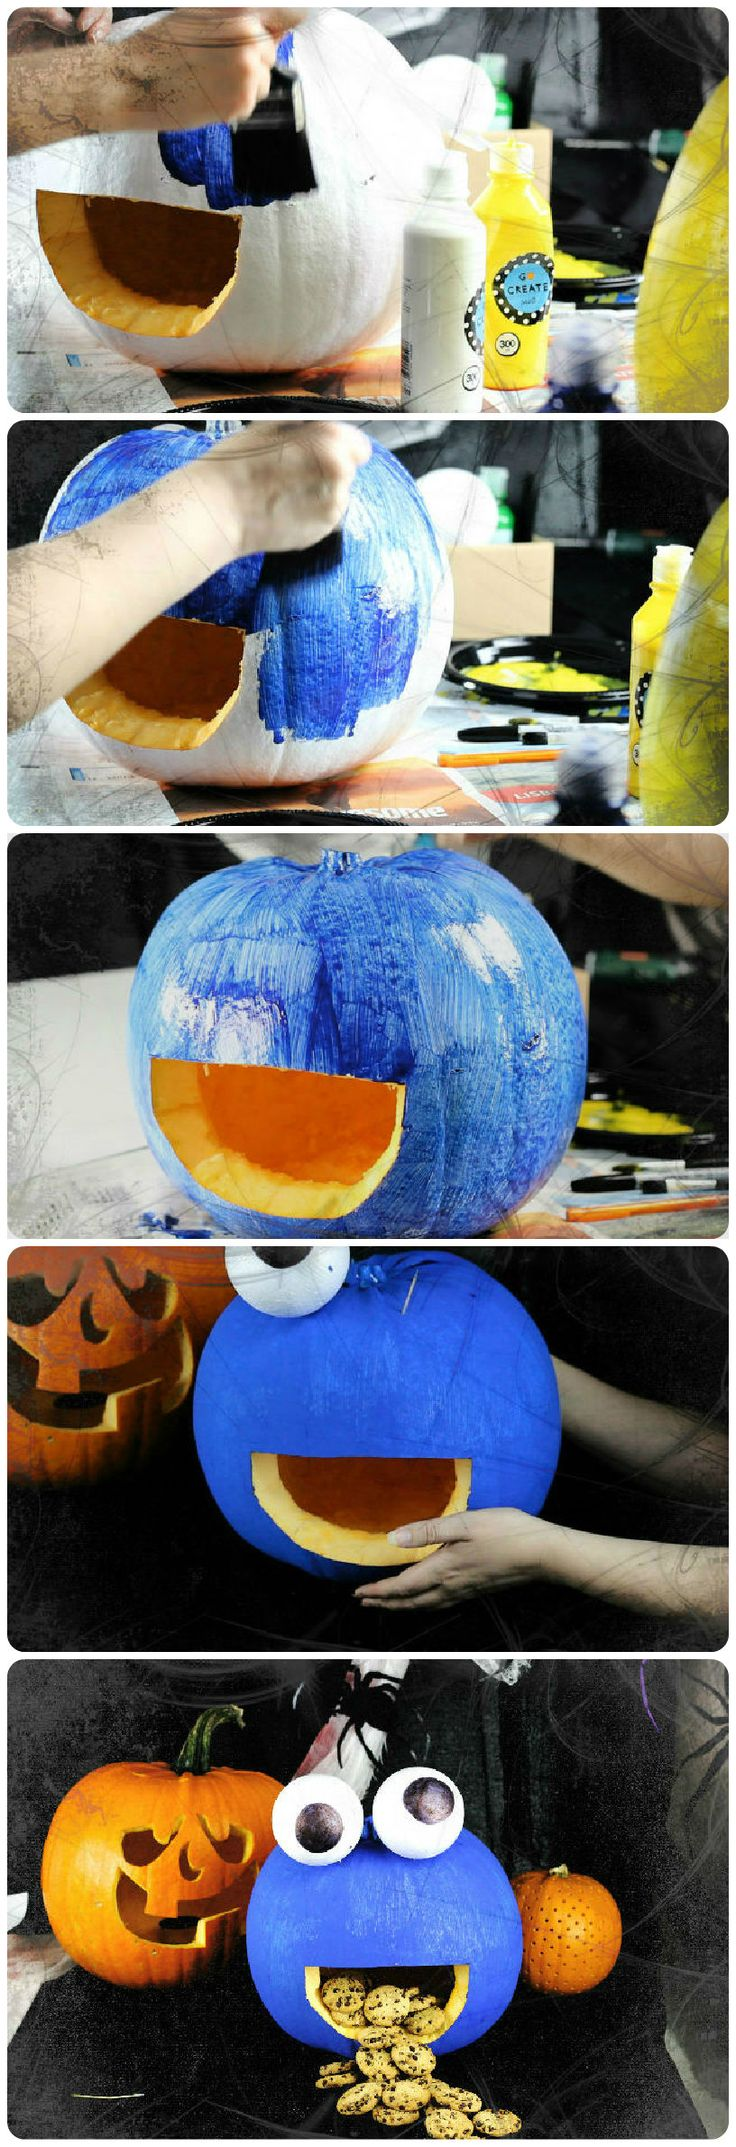 How to make a cookie monster pumpkin in 5 simple steps.